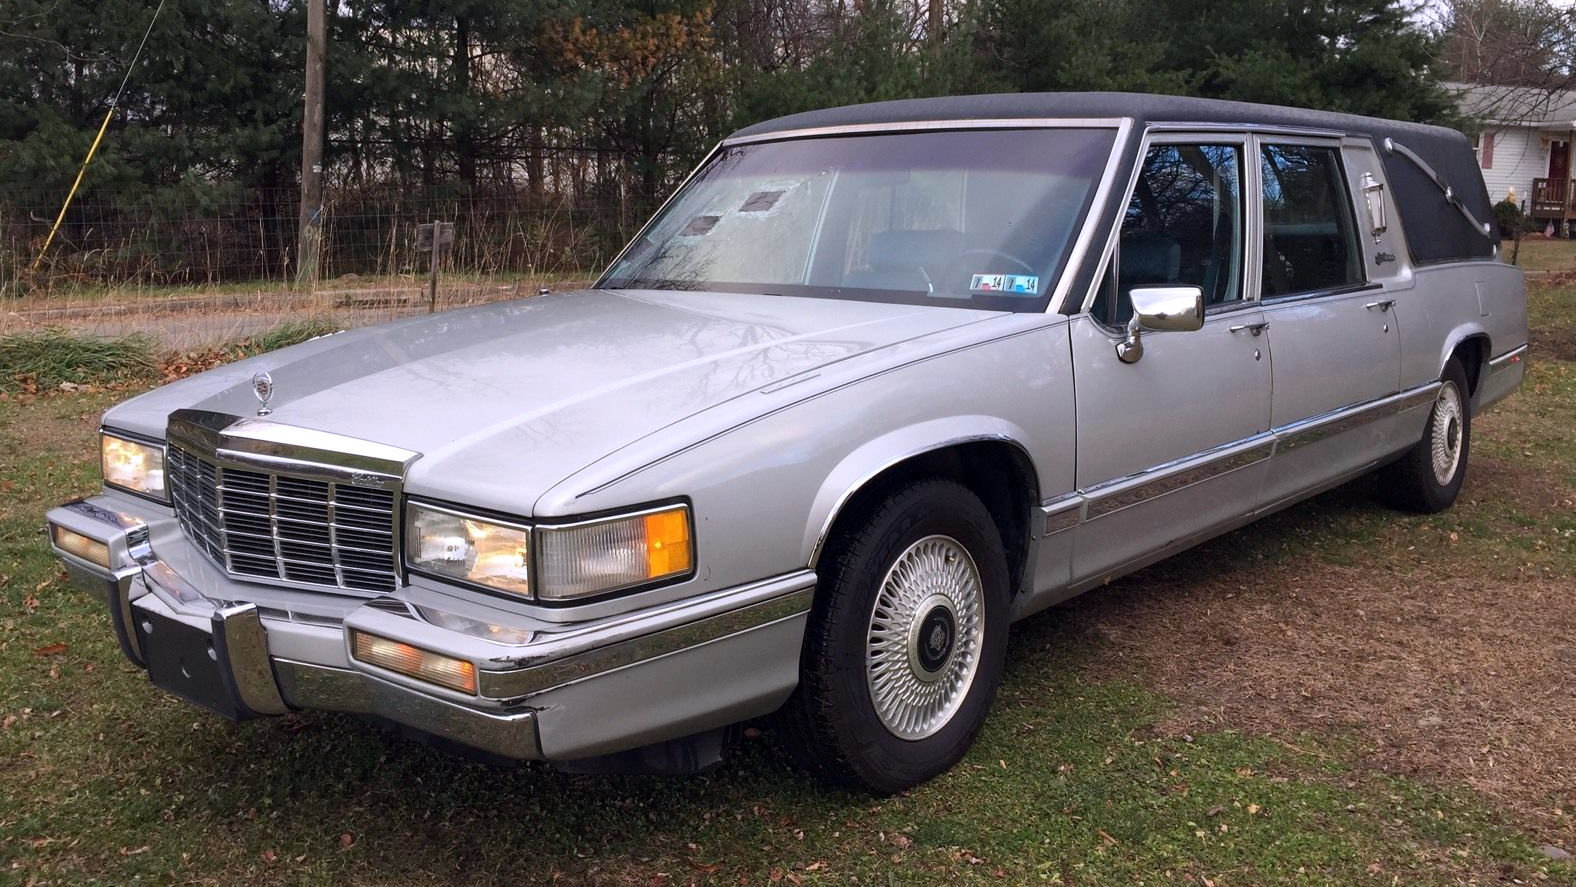 Oil Issues: 1992 Cadillac Fleetwood Hearse